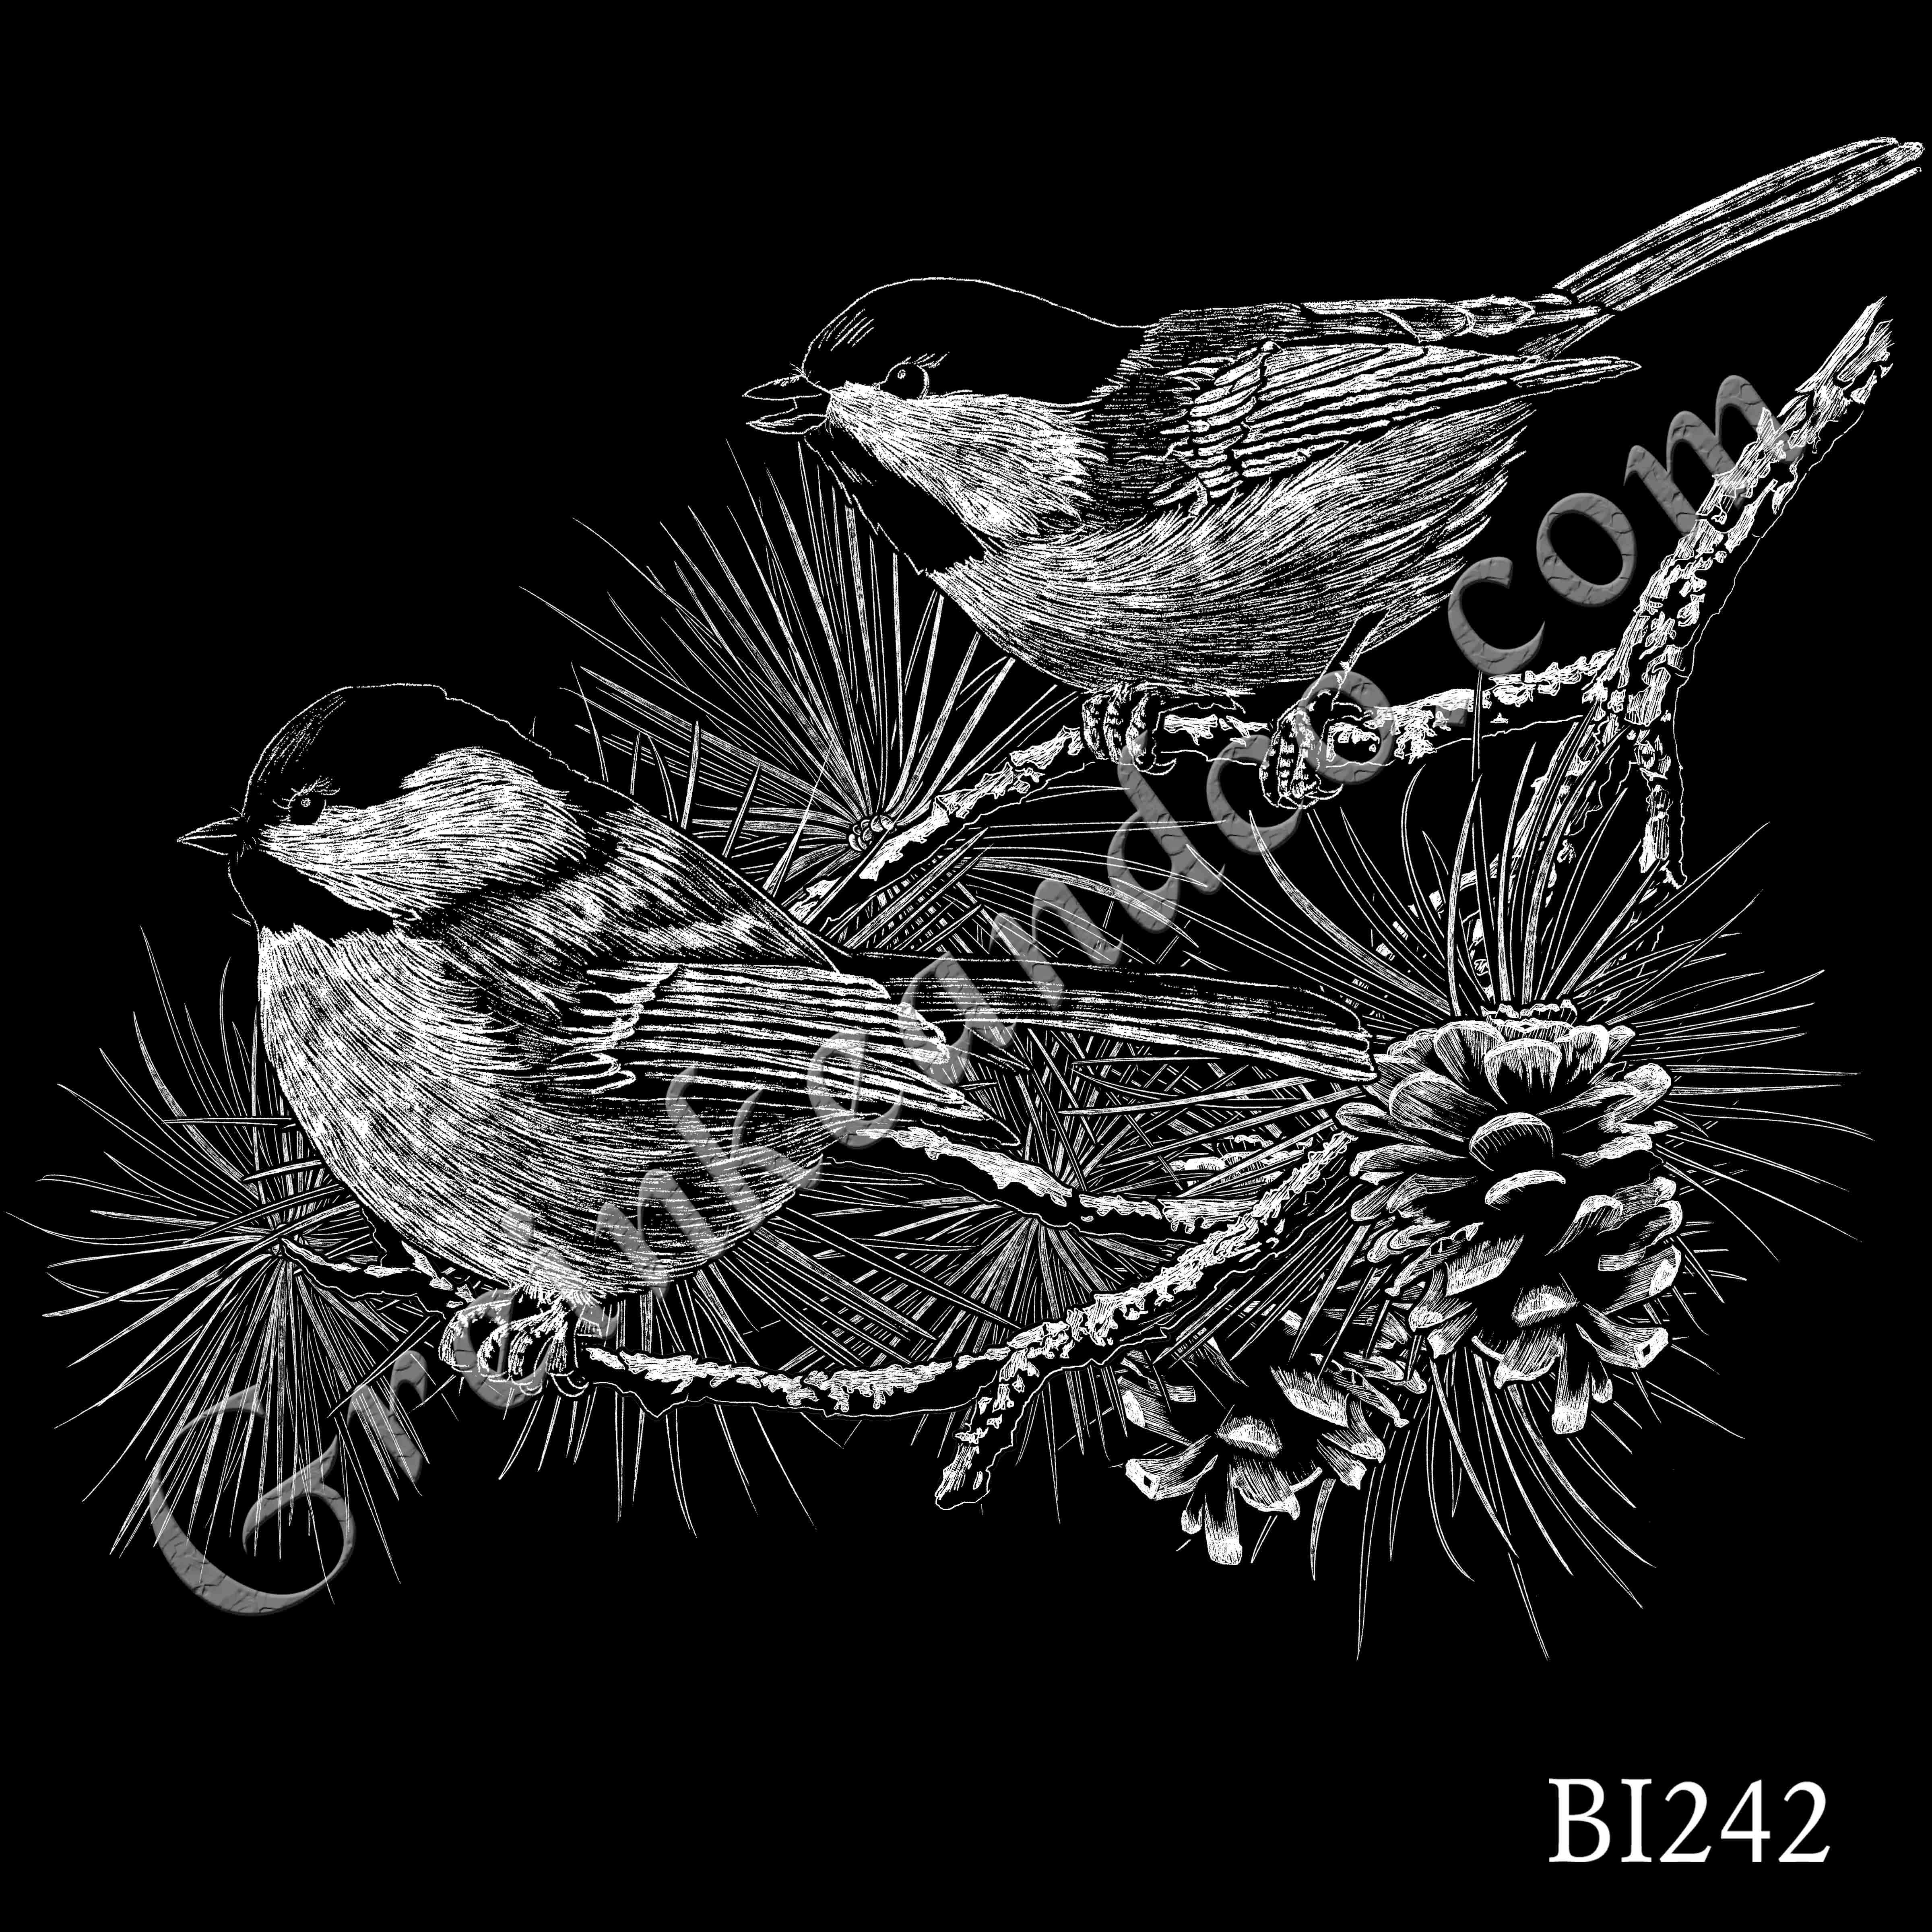 BI242 - Chickadees Branch